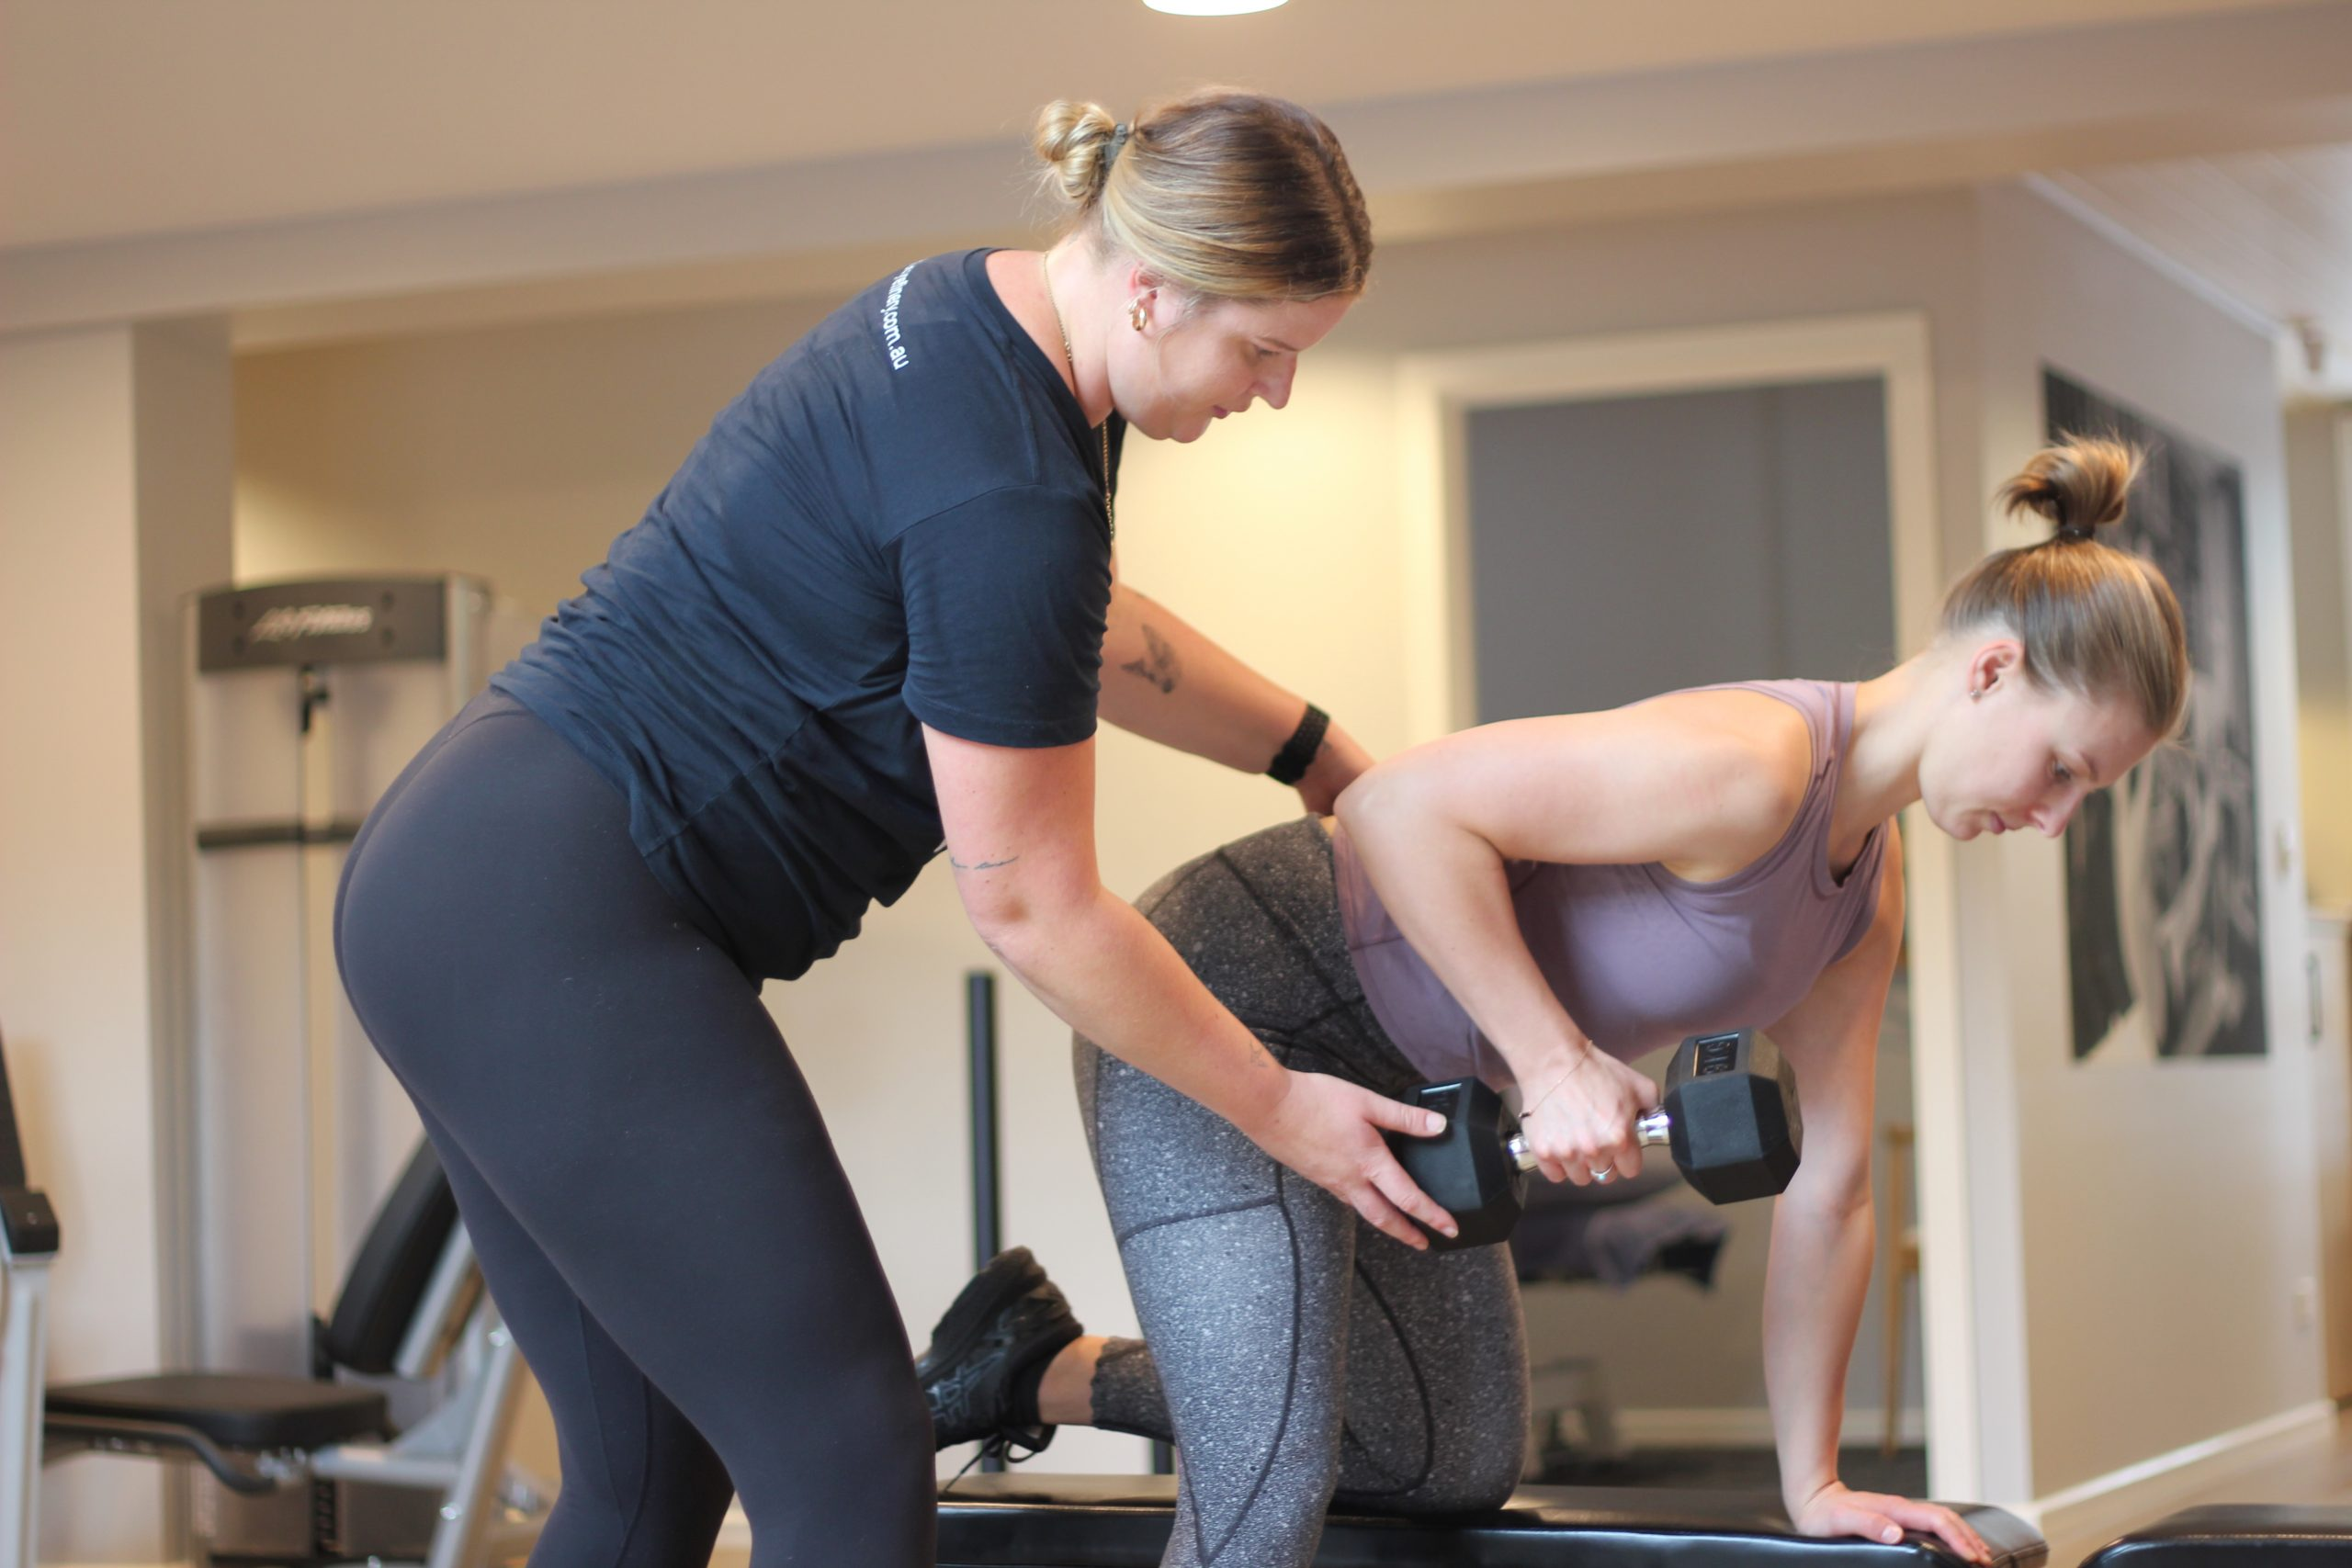 exercise physiologist physiotherapy The Body Refinery New Farm